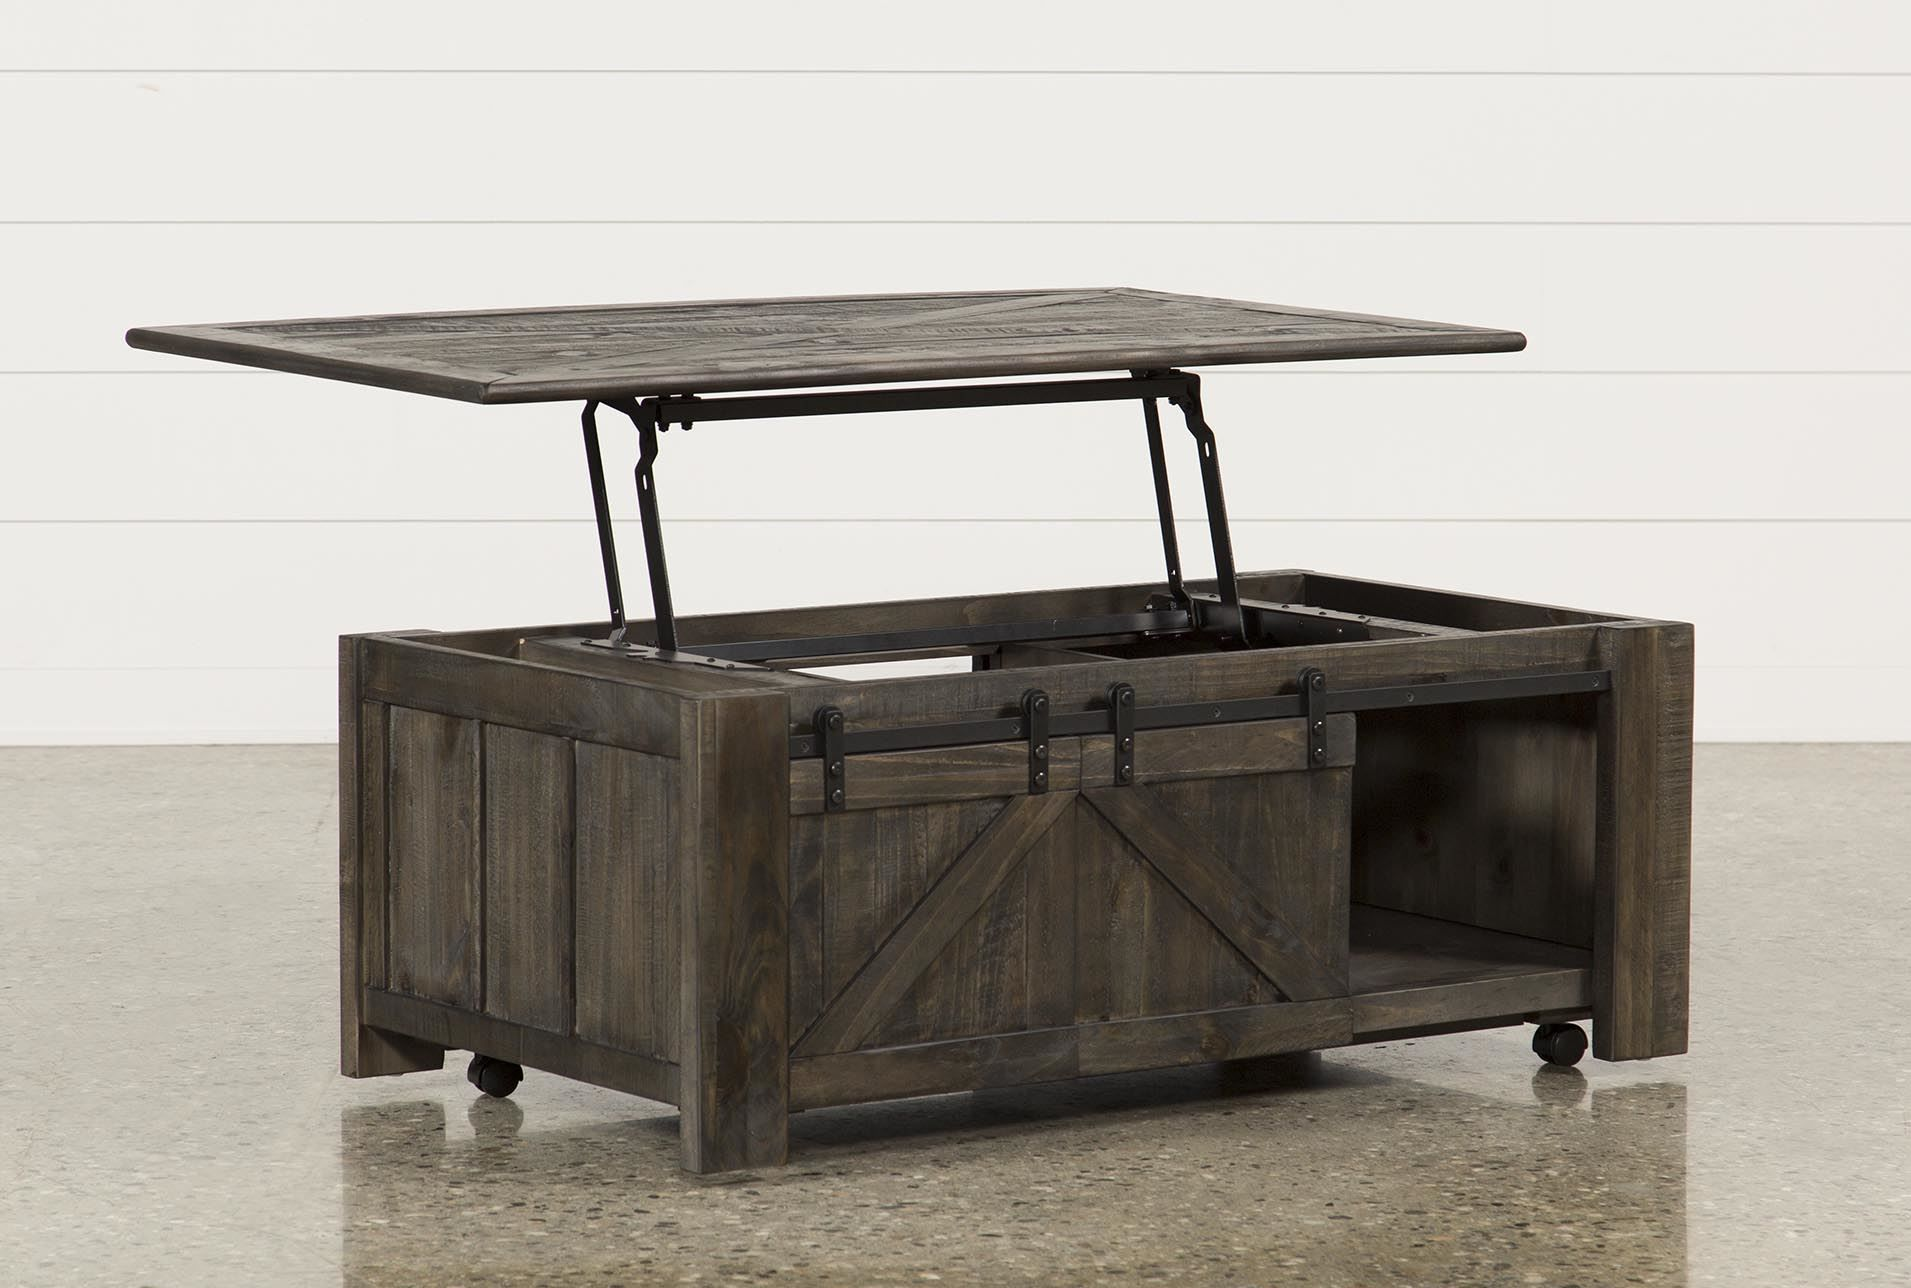 Grant Lift Top Coffee Table W Casters Lift Top Coffee Table Storage Ottoman Coffee Table Door Coffee Tables